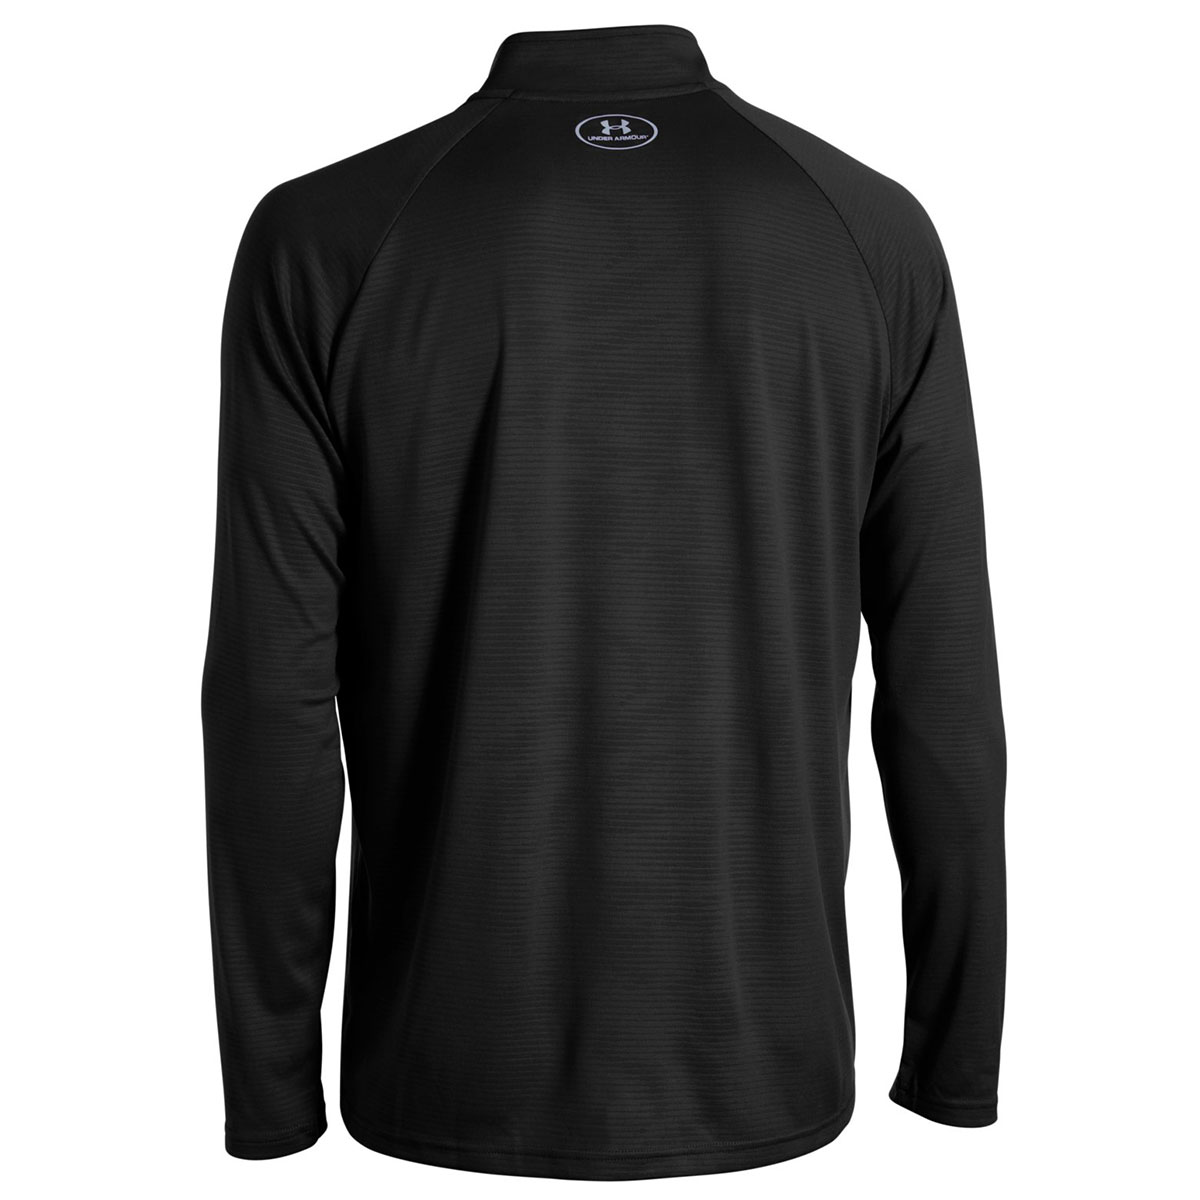 Under-Armour-Mens-UA-Tech-1-4-Zip-Long-Sleeve-Top-Workout-Layer-27-OFF-RRP thumbnail 29